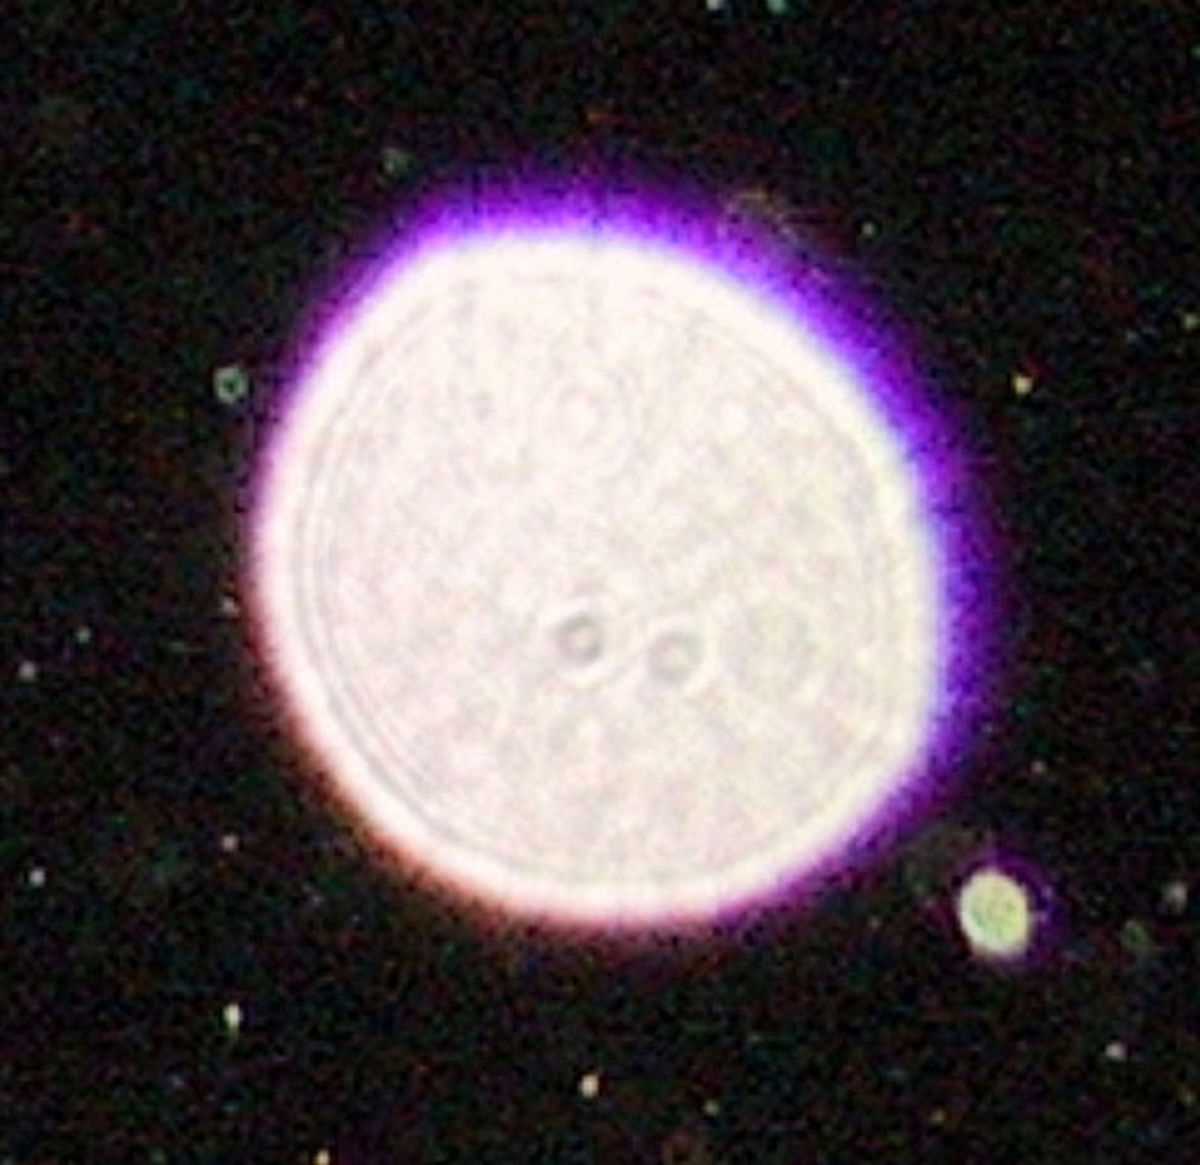 A close up shot of a purple orb.